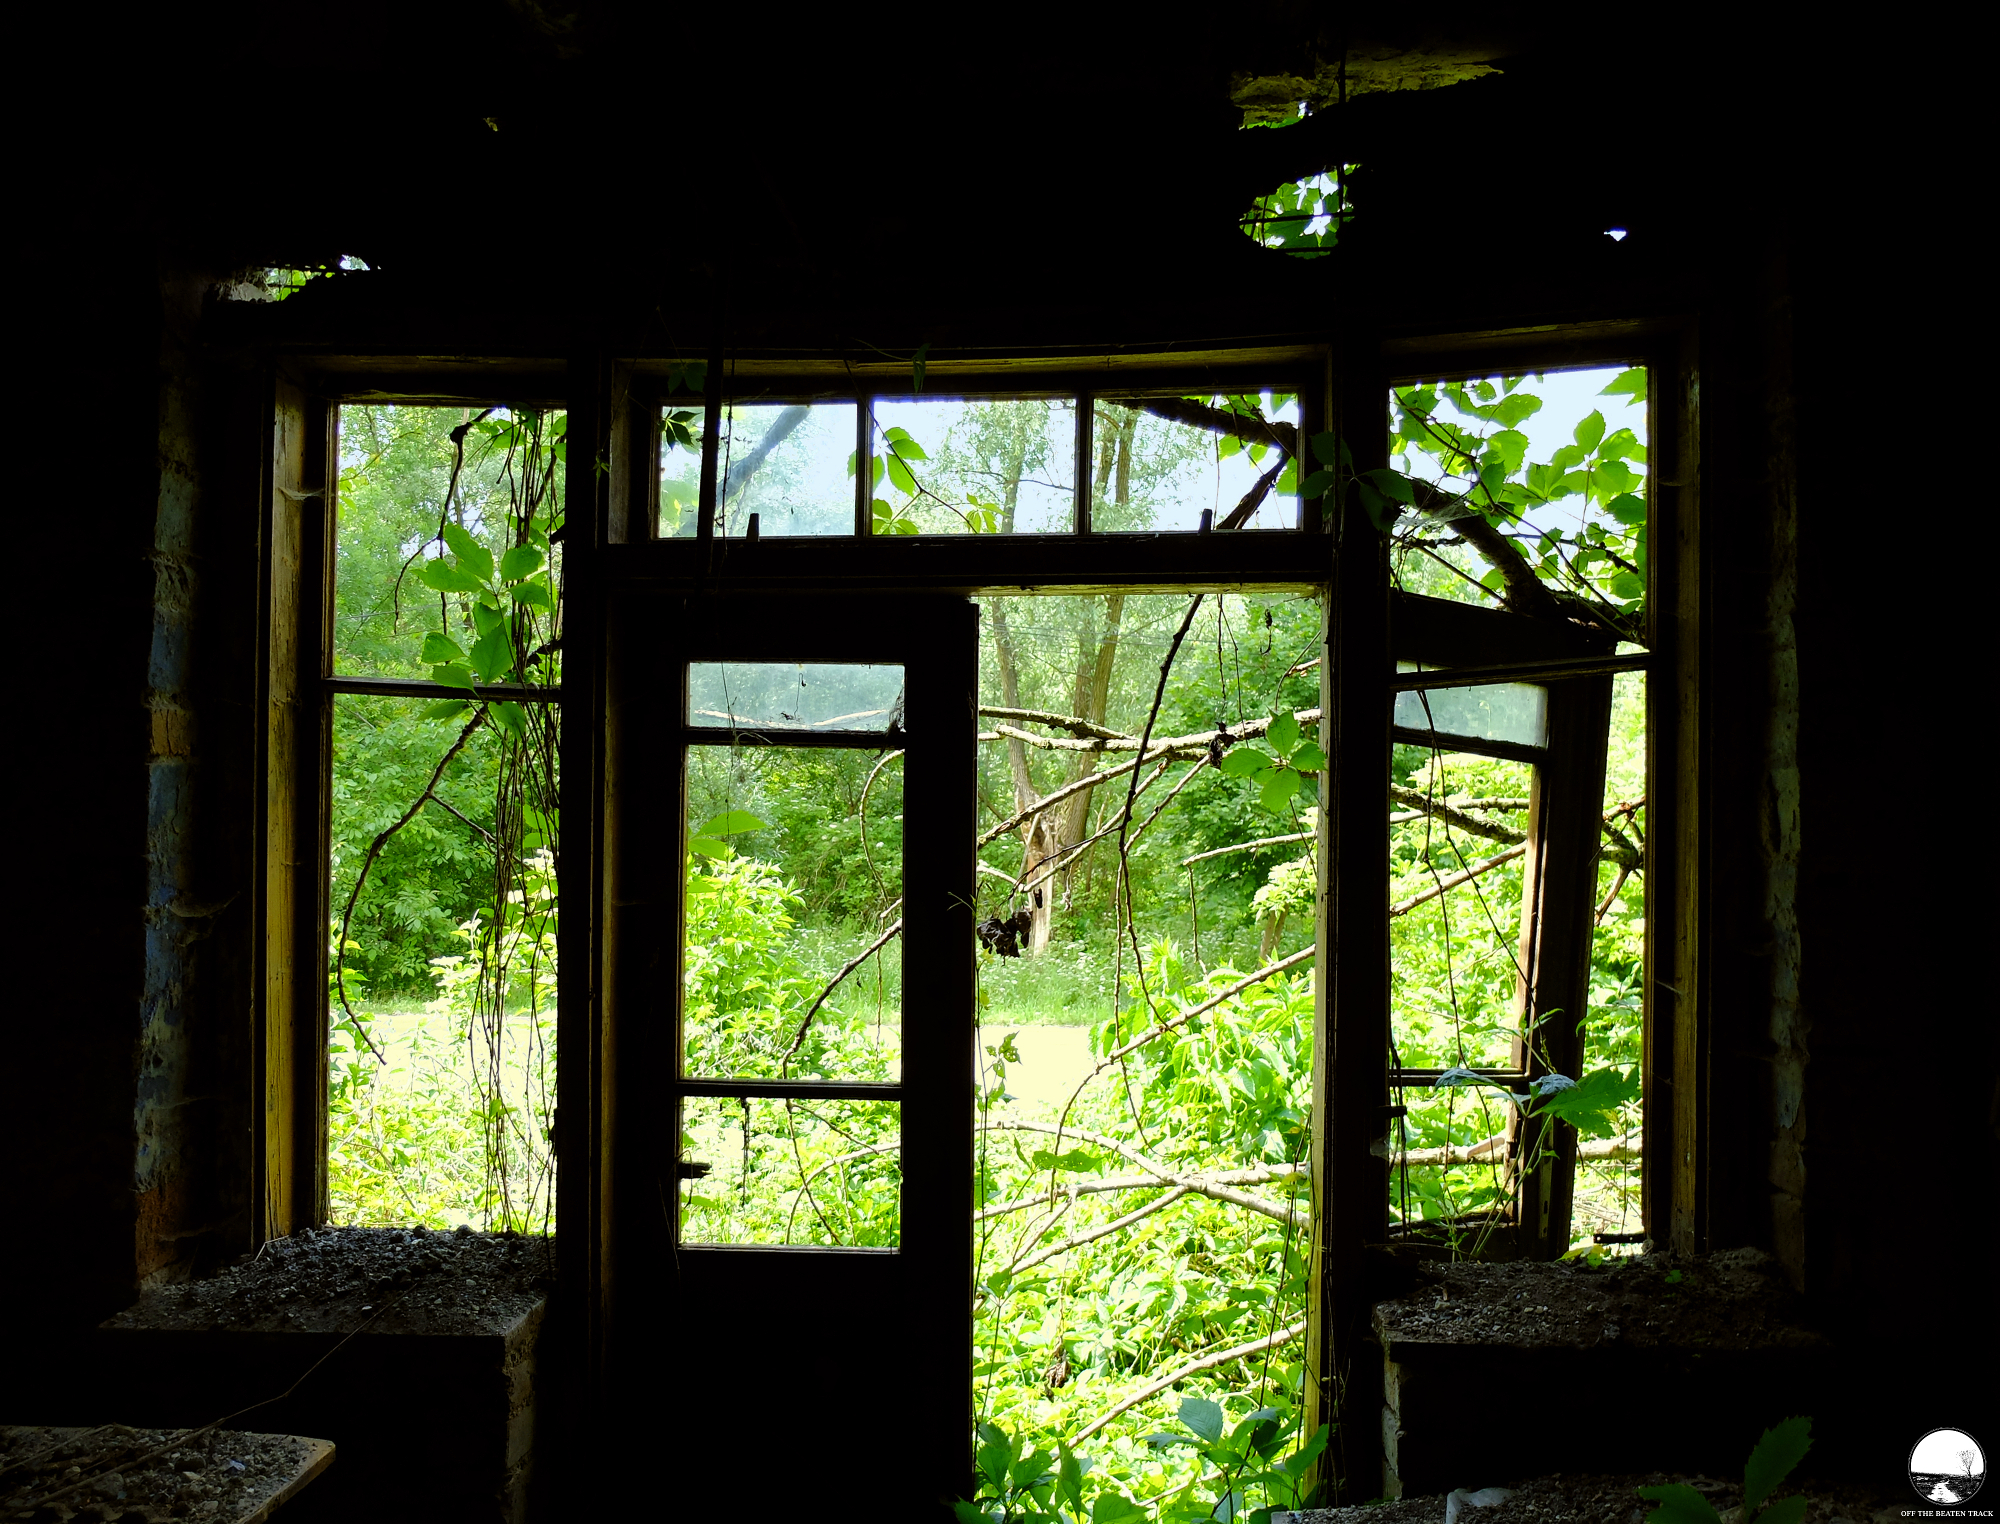 The Abandoned House 'What the Vines Are Hiding' (Poland) - 16